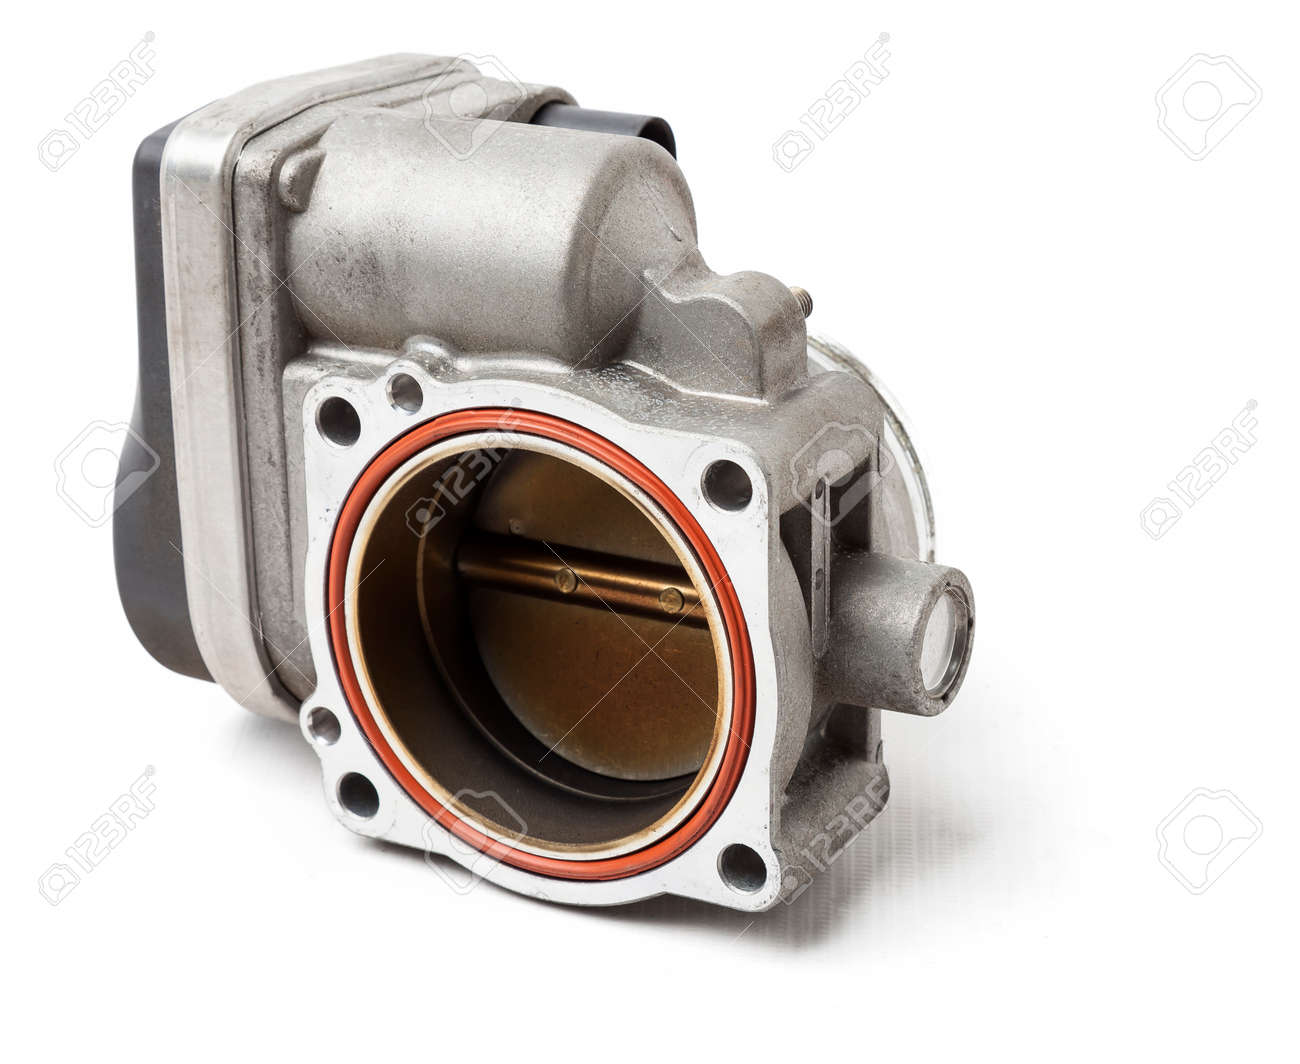 car part engine throttle valve opened by the gas pedal to supply more air to the engine. spare parts catalog for vehicles from the junkyard. - 169051521